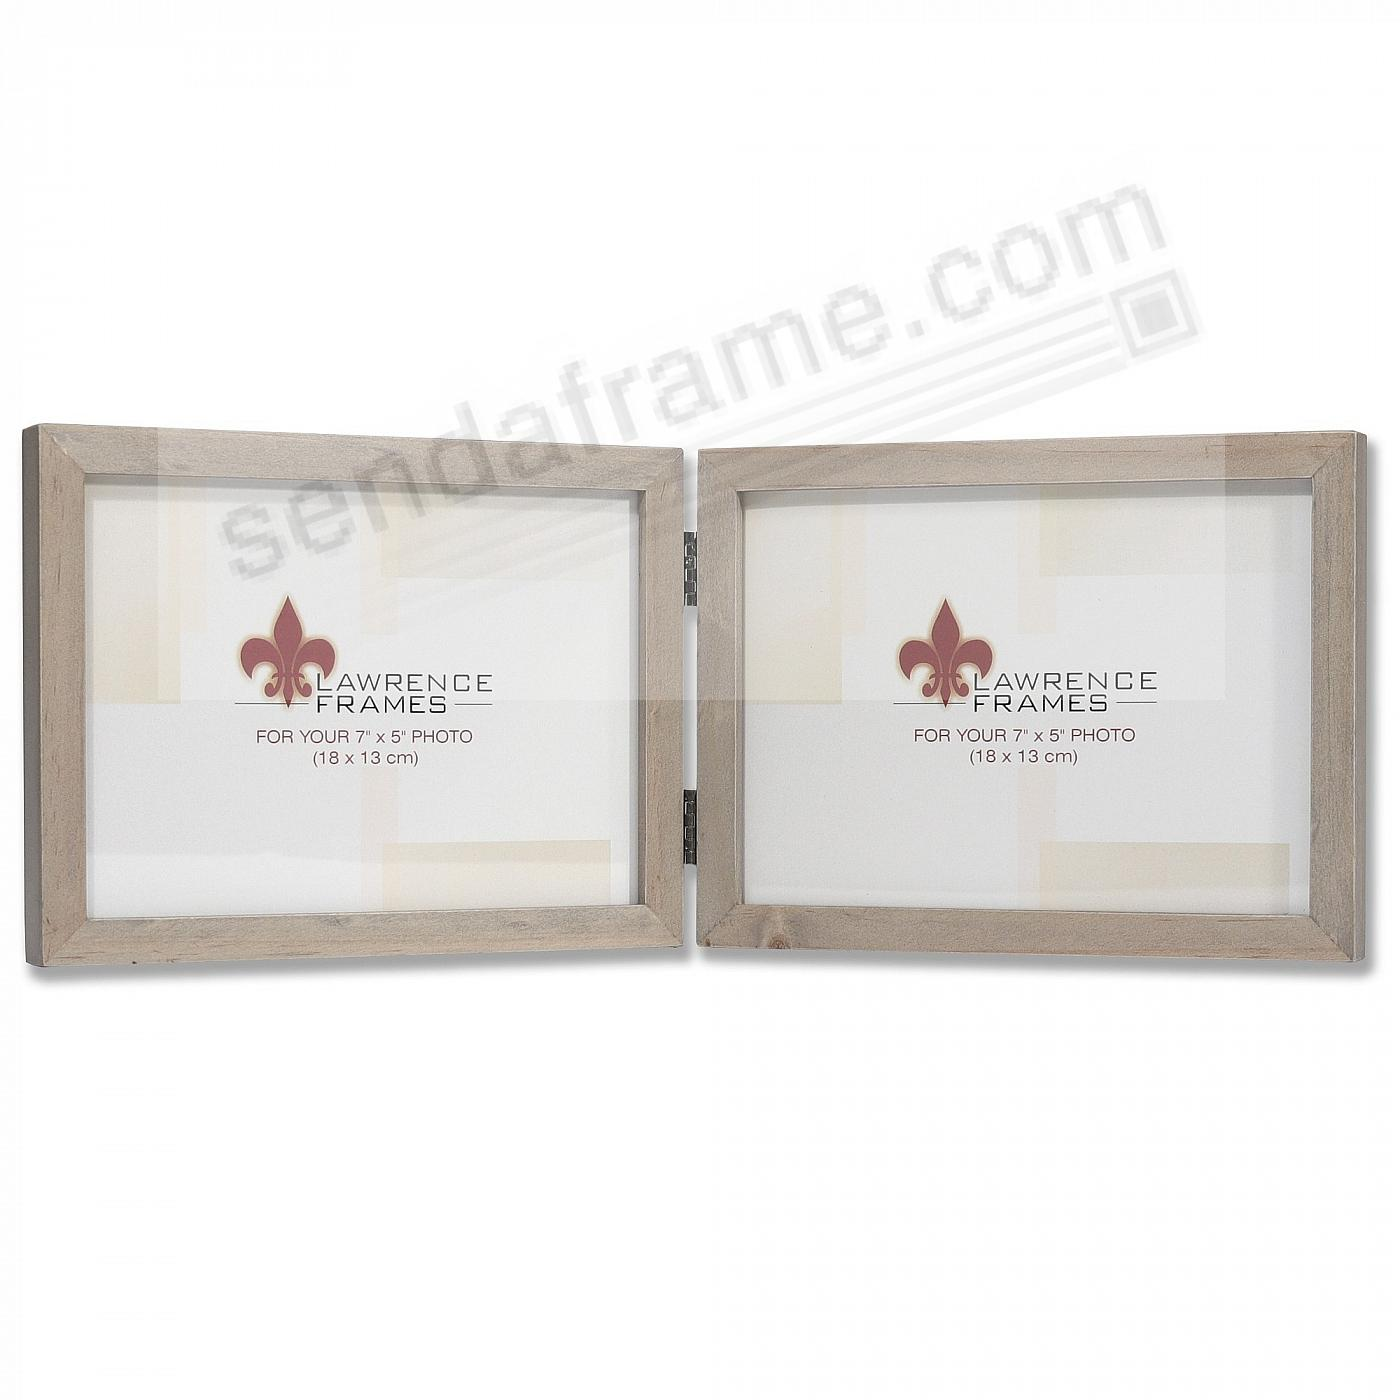 SQUARE CORNER Gray Stain Double Hinged 7x5 frame by Lawrence Frames®